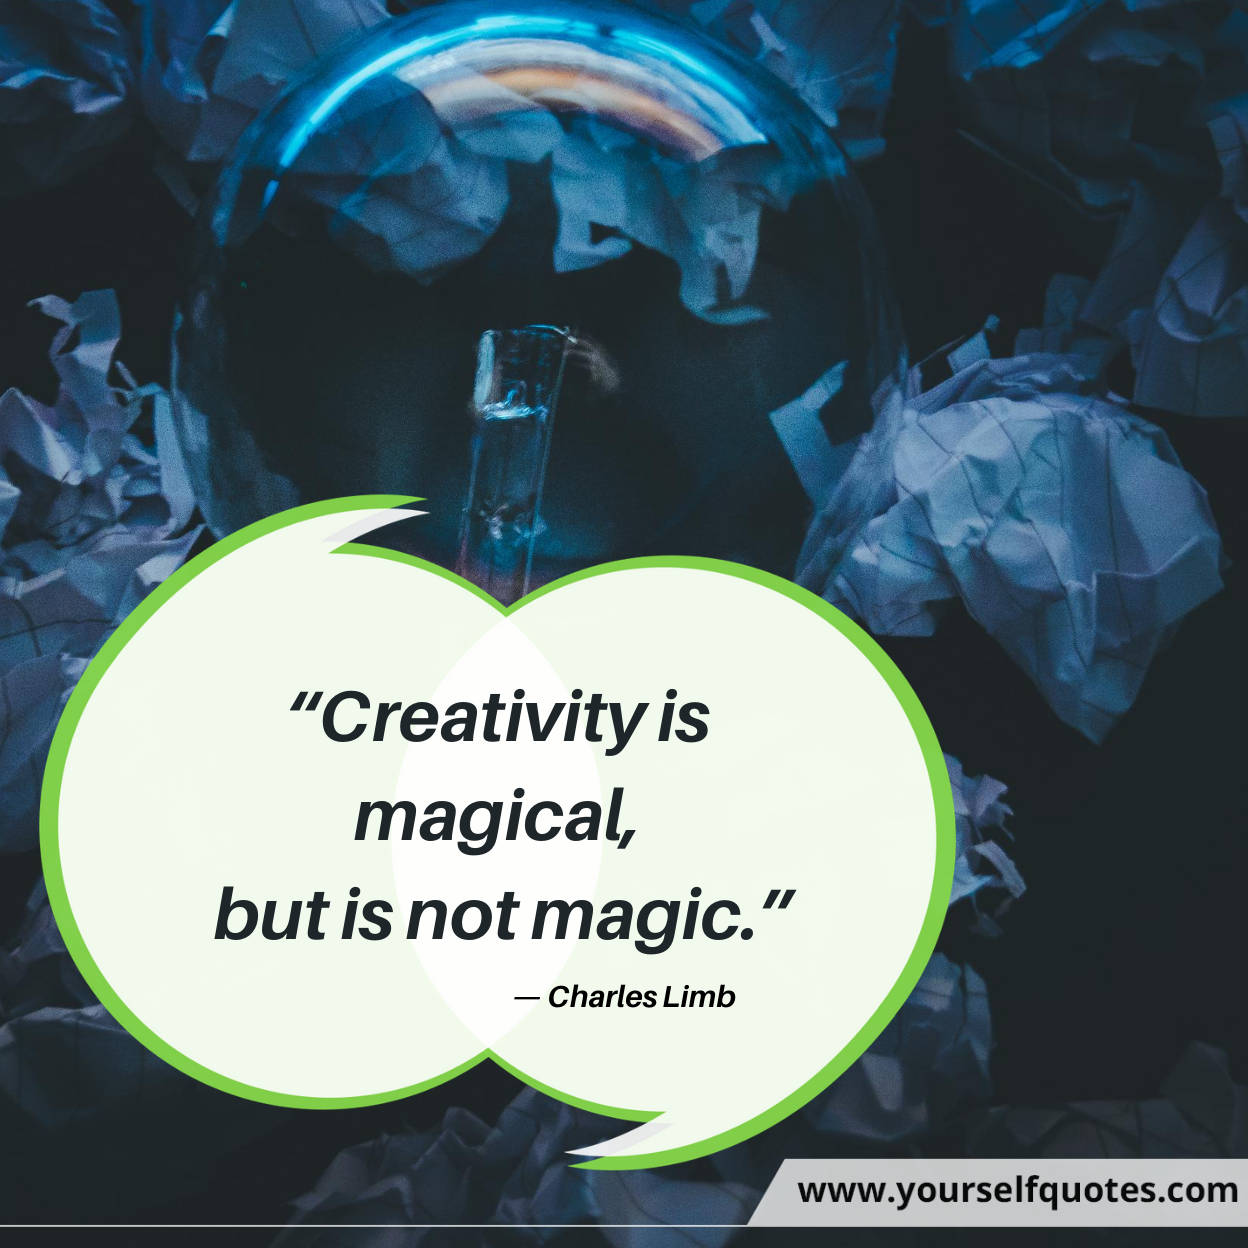 Quotes on Creativity Images